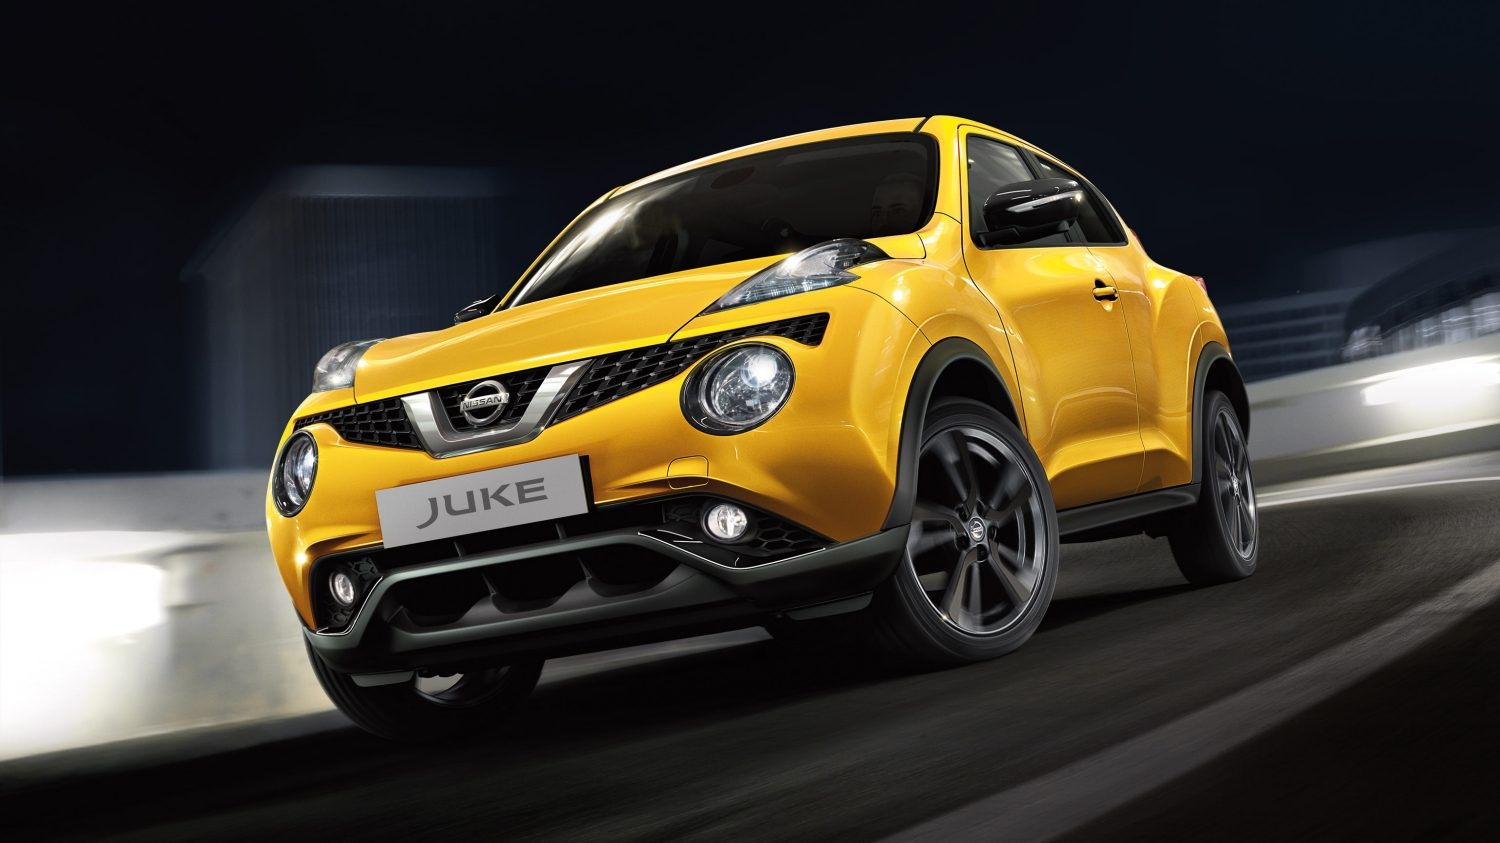 NISSAN JUKE – ALL-MODE 4x4i mit Torque Vectoring